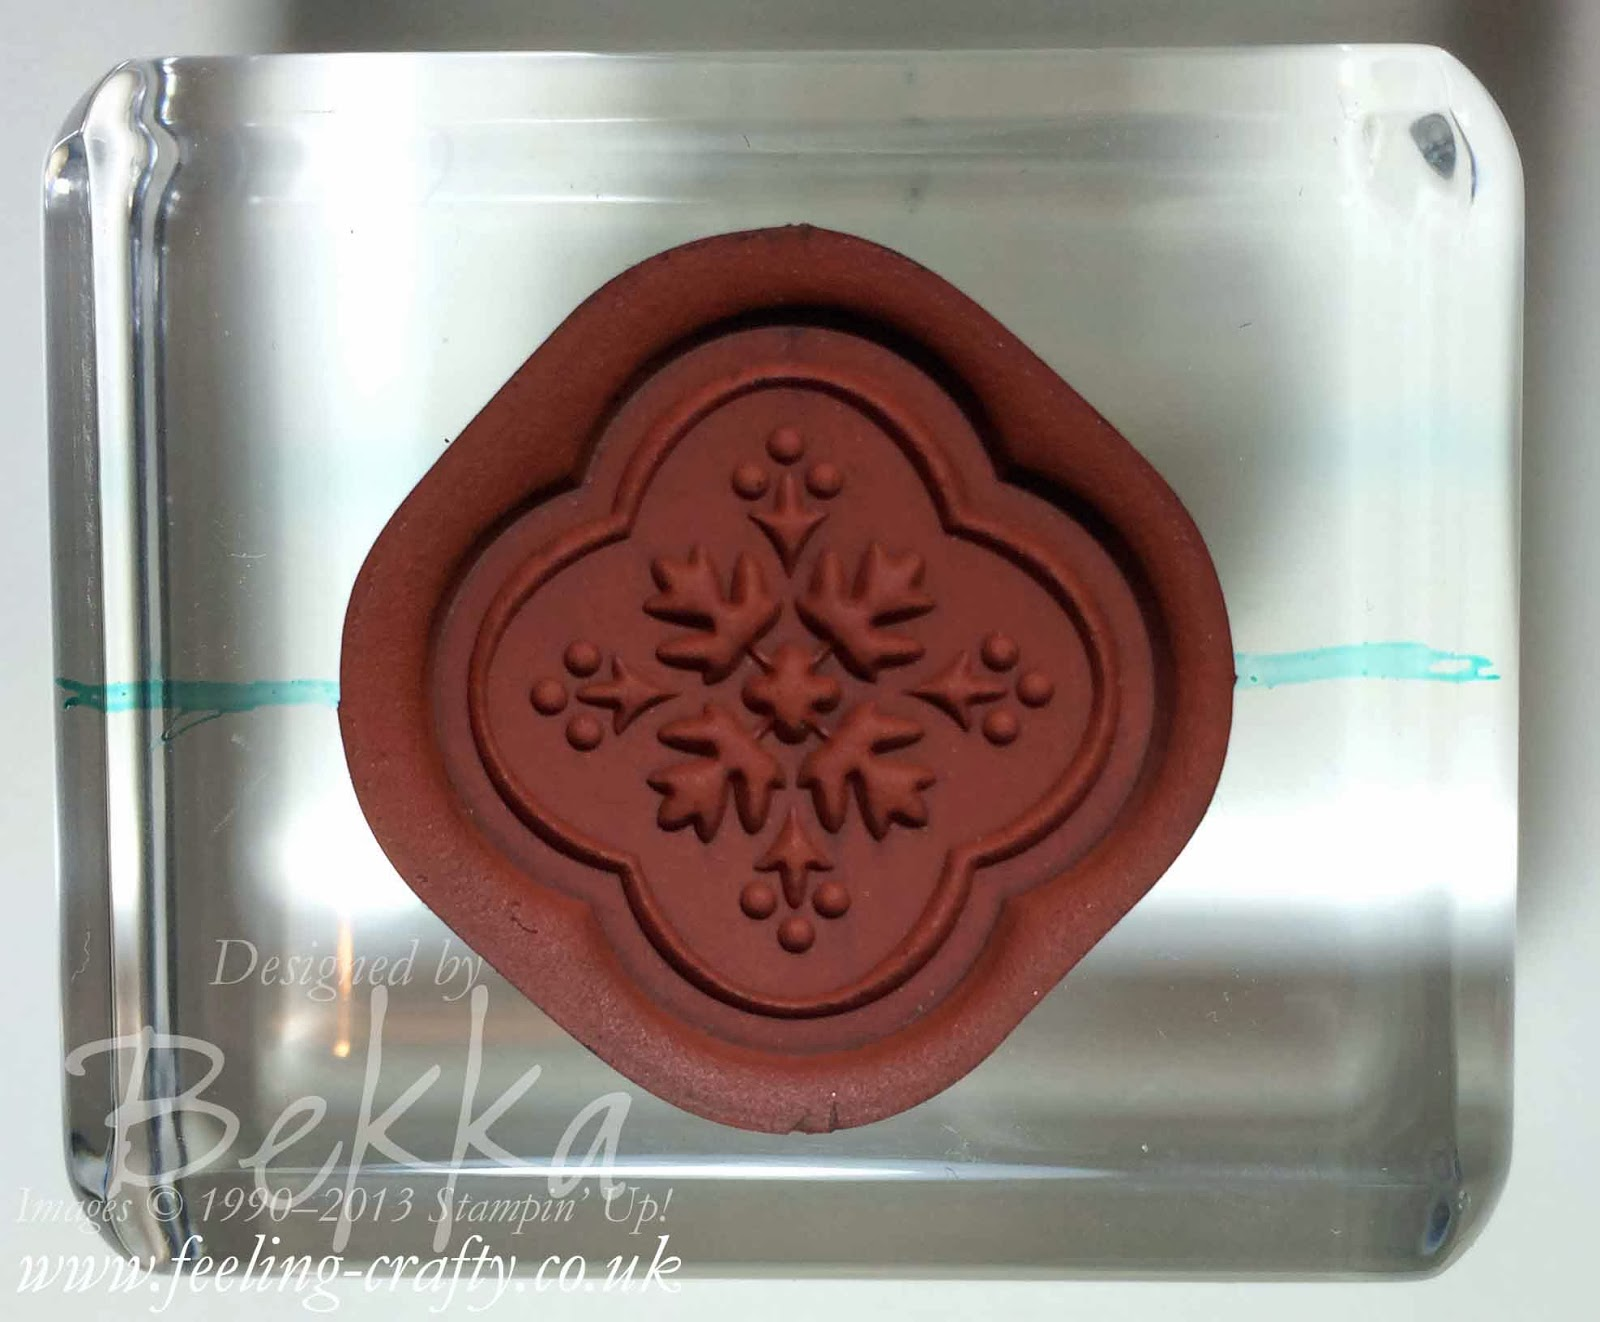 How to line up your Stampin' Up! Clear Mount Stamps - check out this blog for lots of great tips